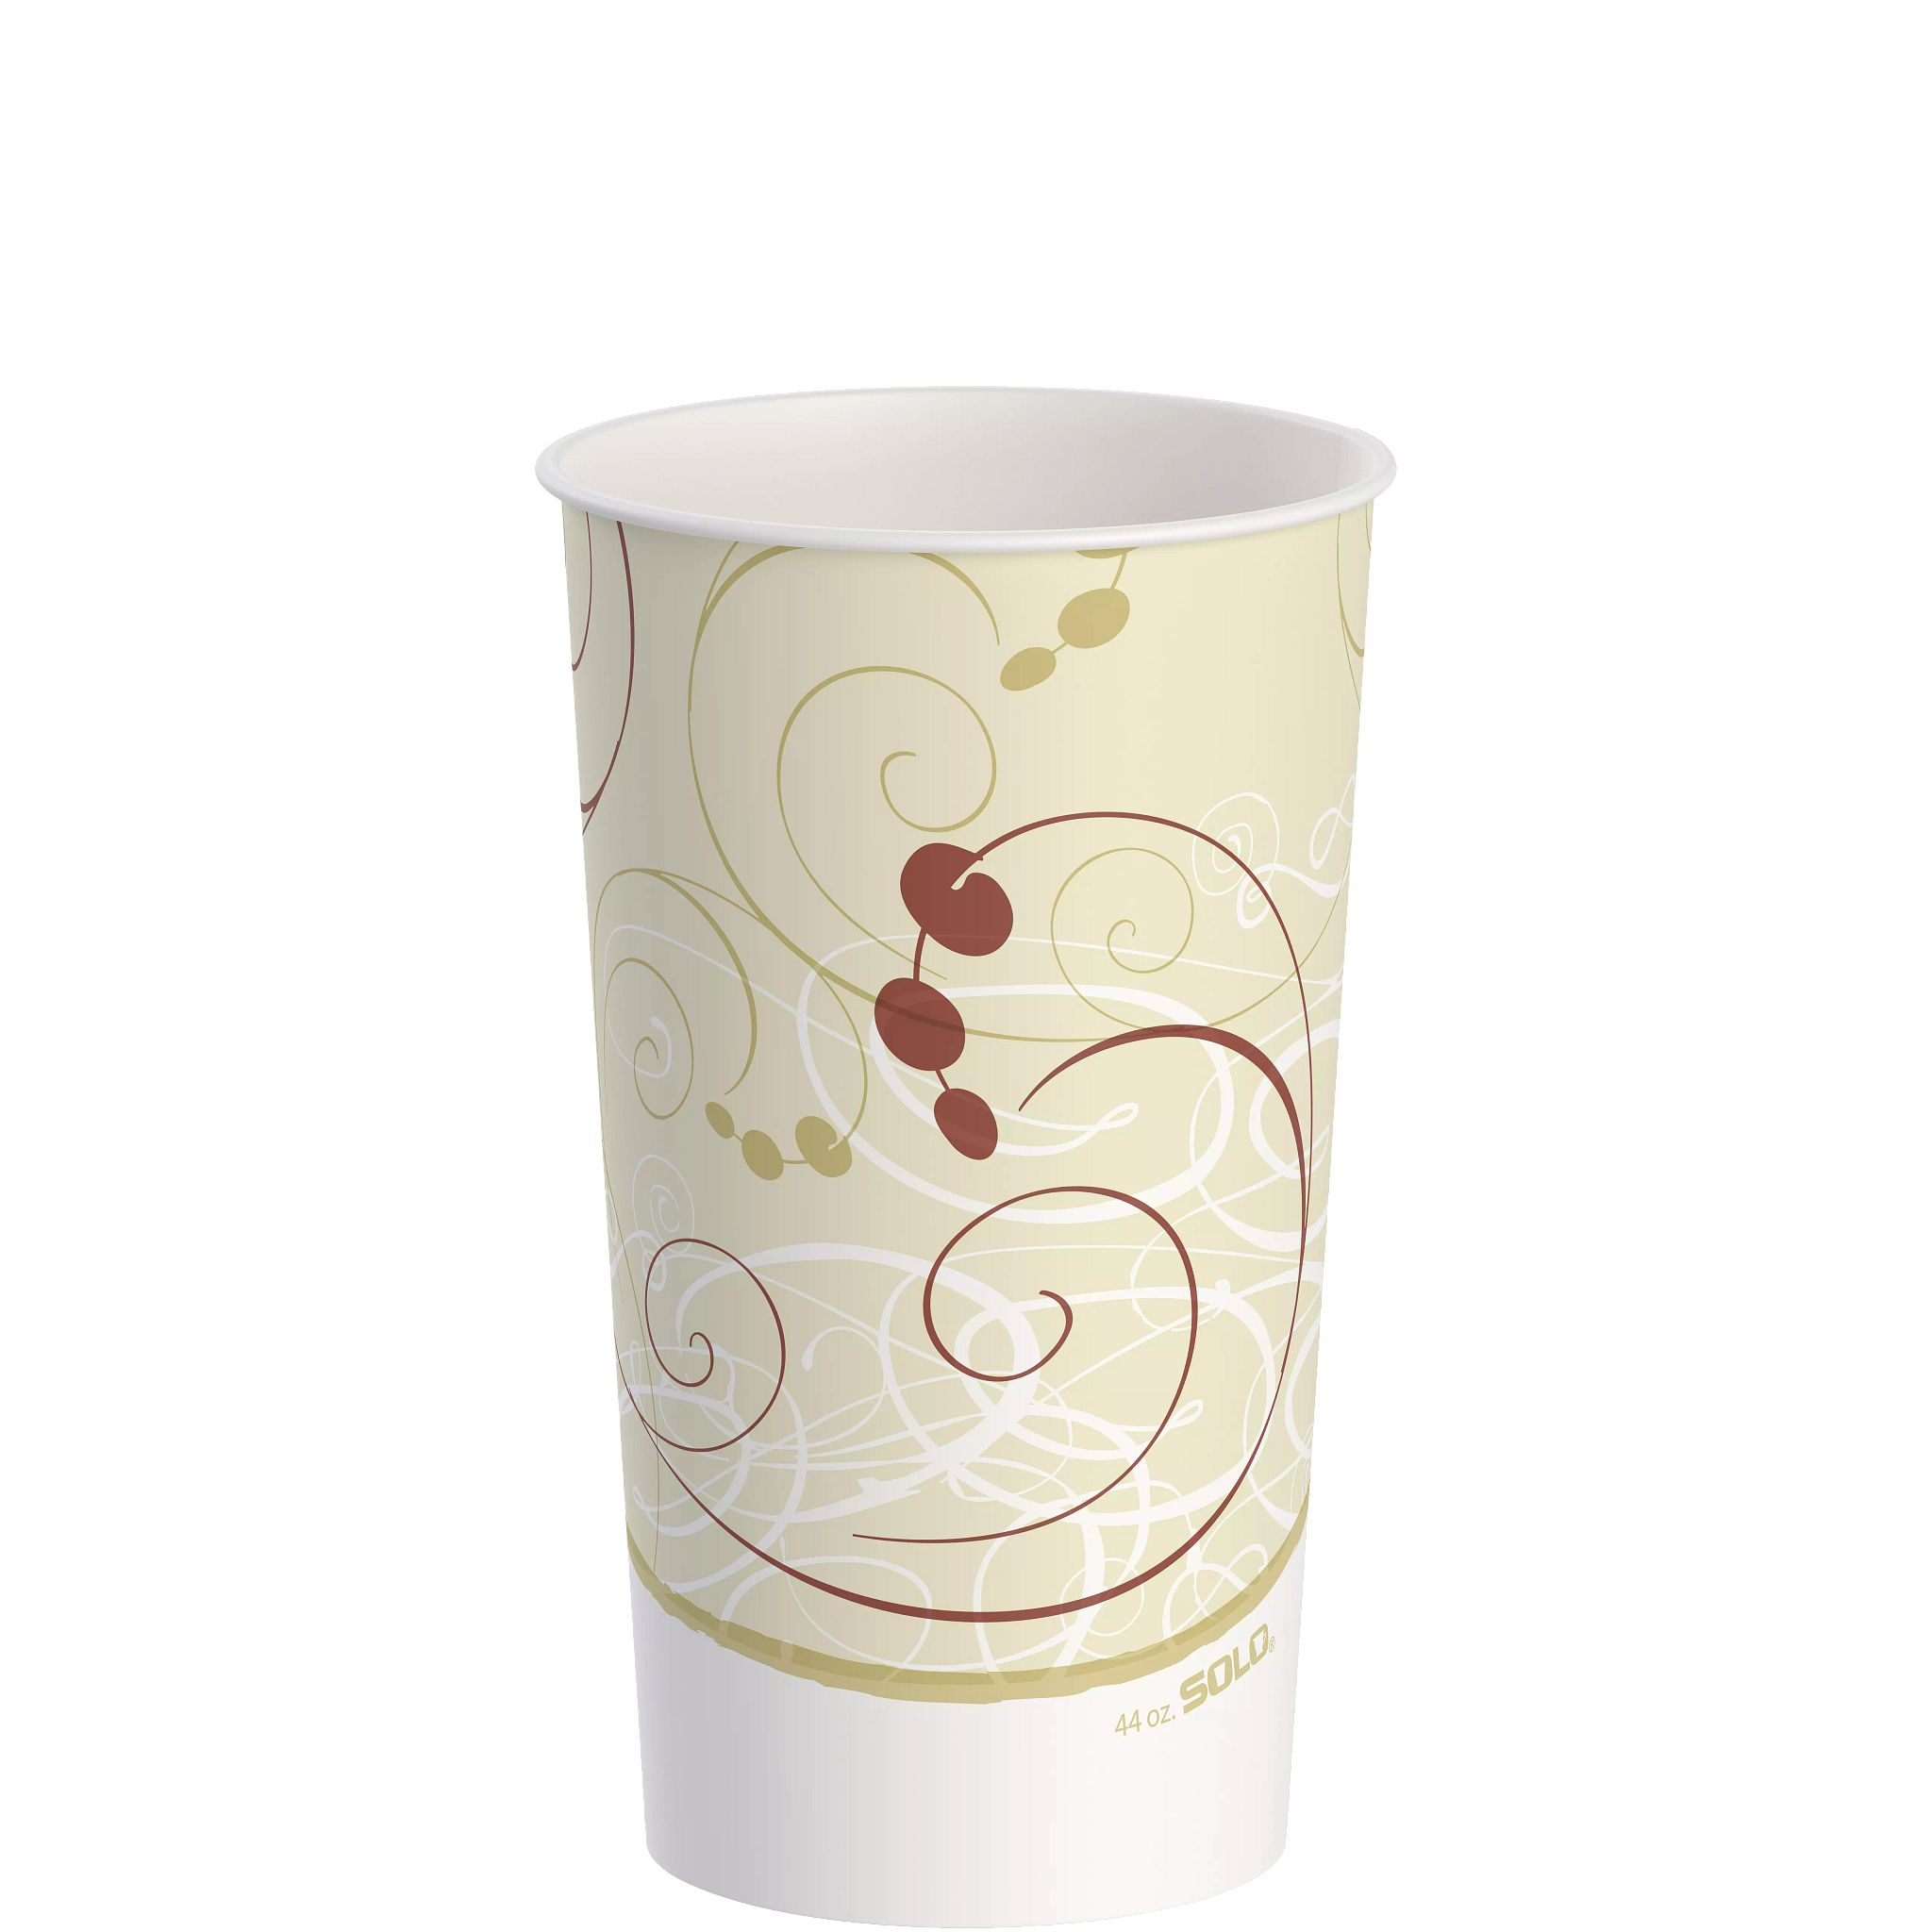 DBL POLY CUP 44 OZ CUP SOLO